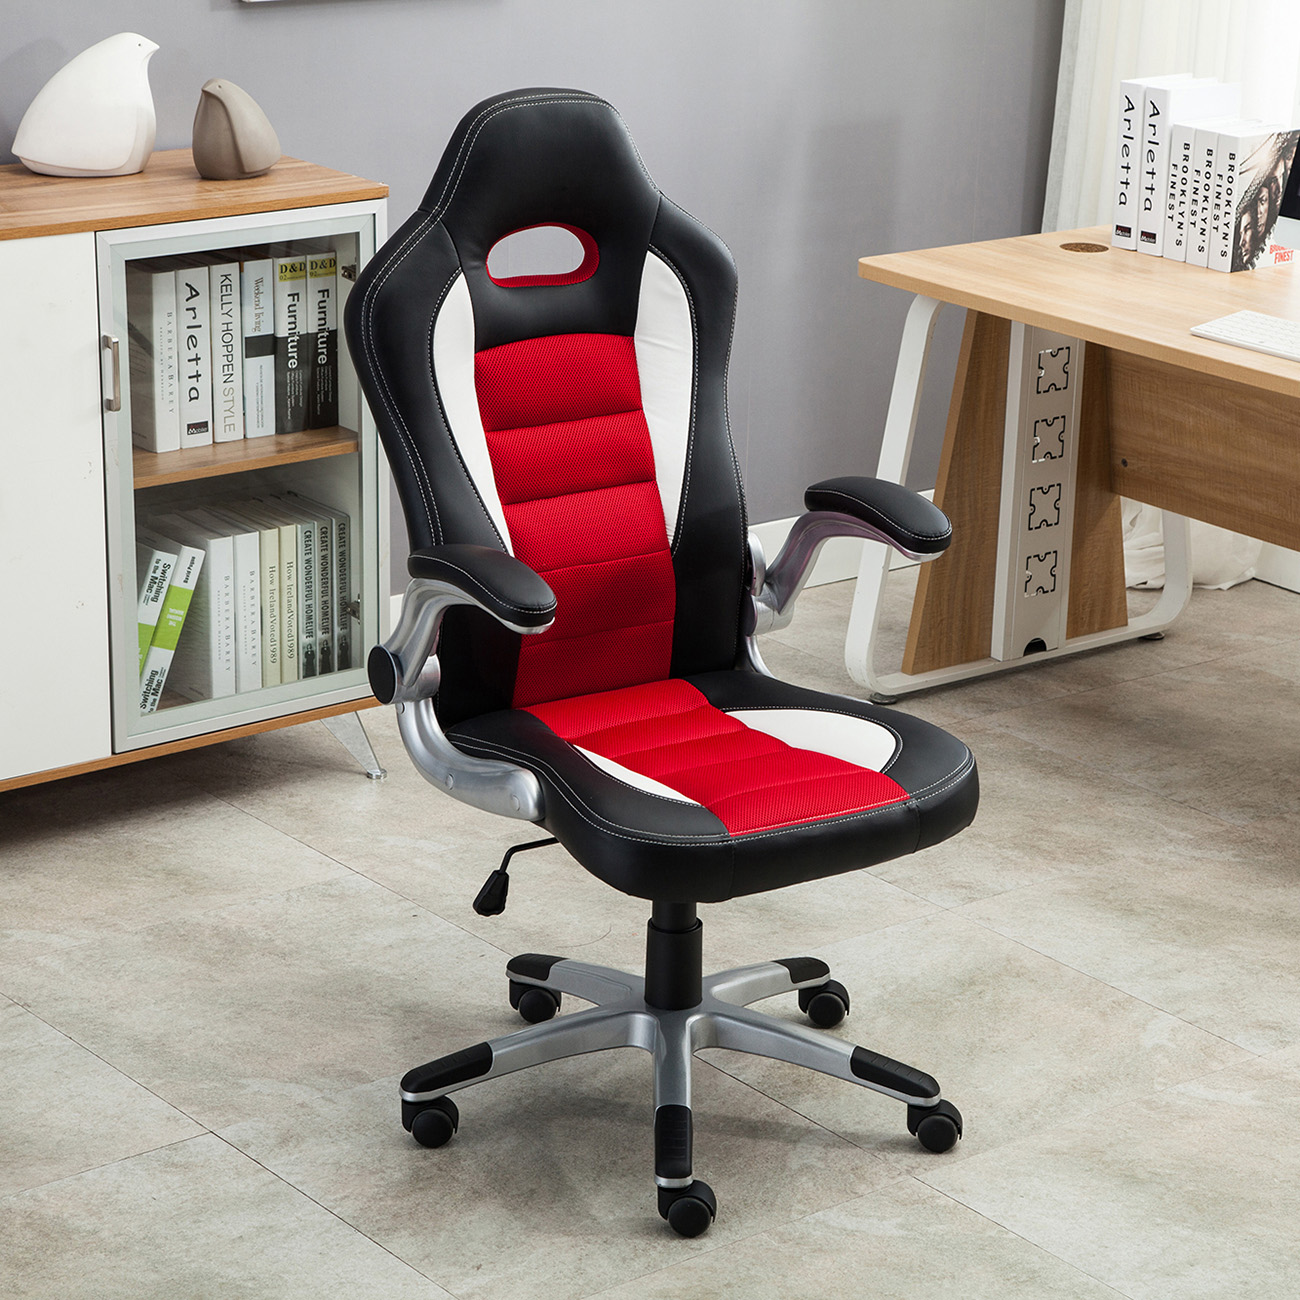 Fine Details About Office Racing Chair Bucket Seat High Back Ergonomic Gaming Computer Flip Armrest Download Free Architecture Designs Salvmadebymaigaardcom